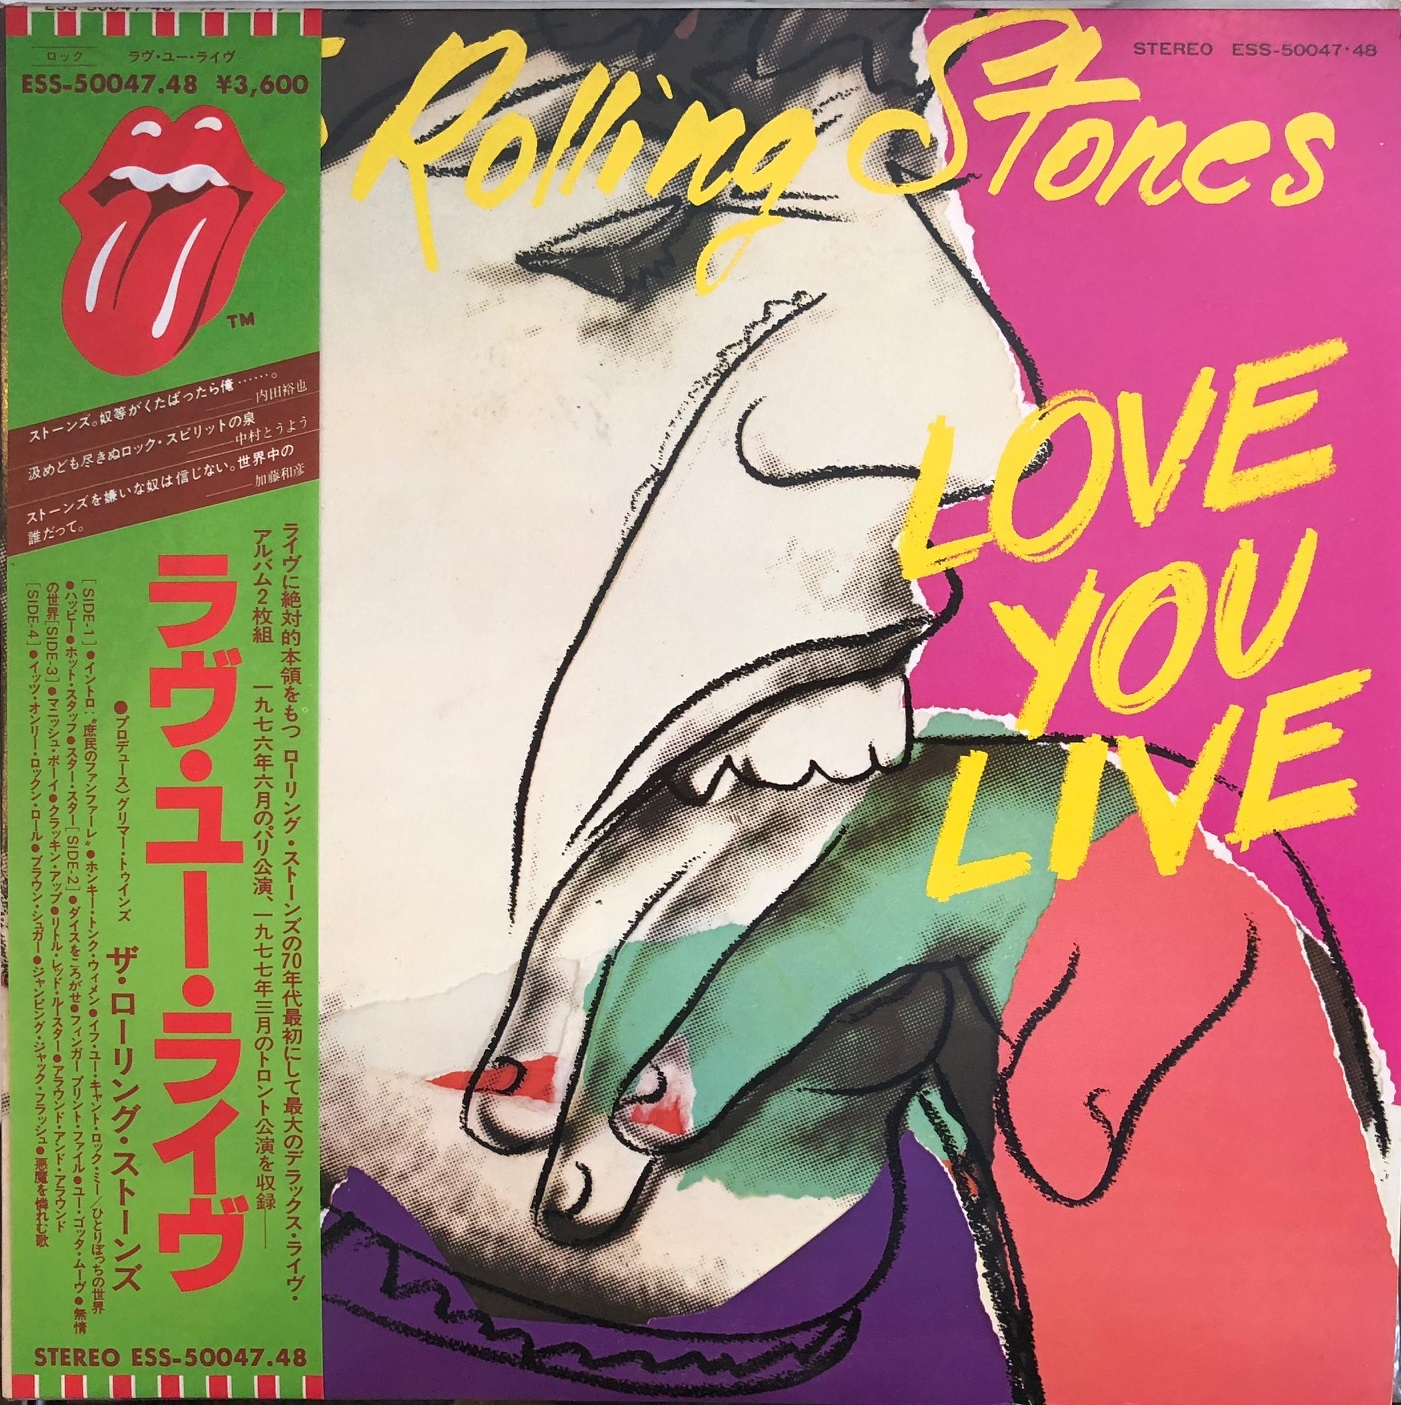 ROLLING STONES / LOVE YOU LIVE